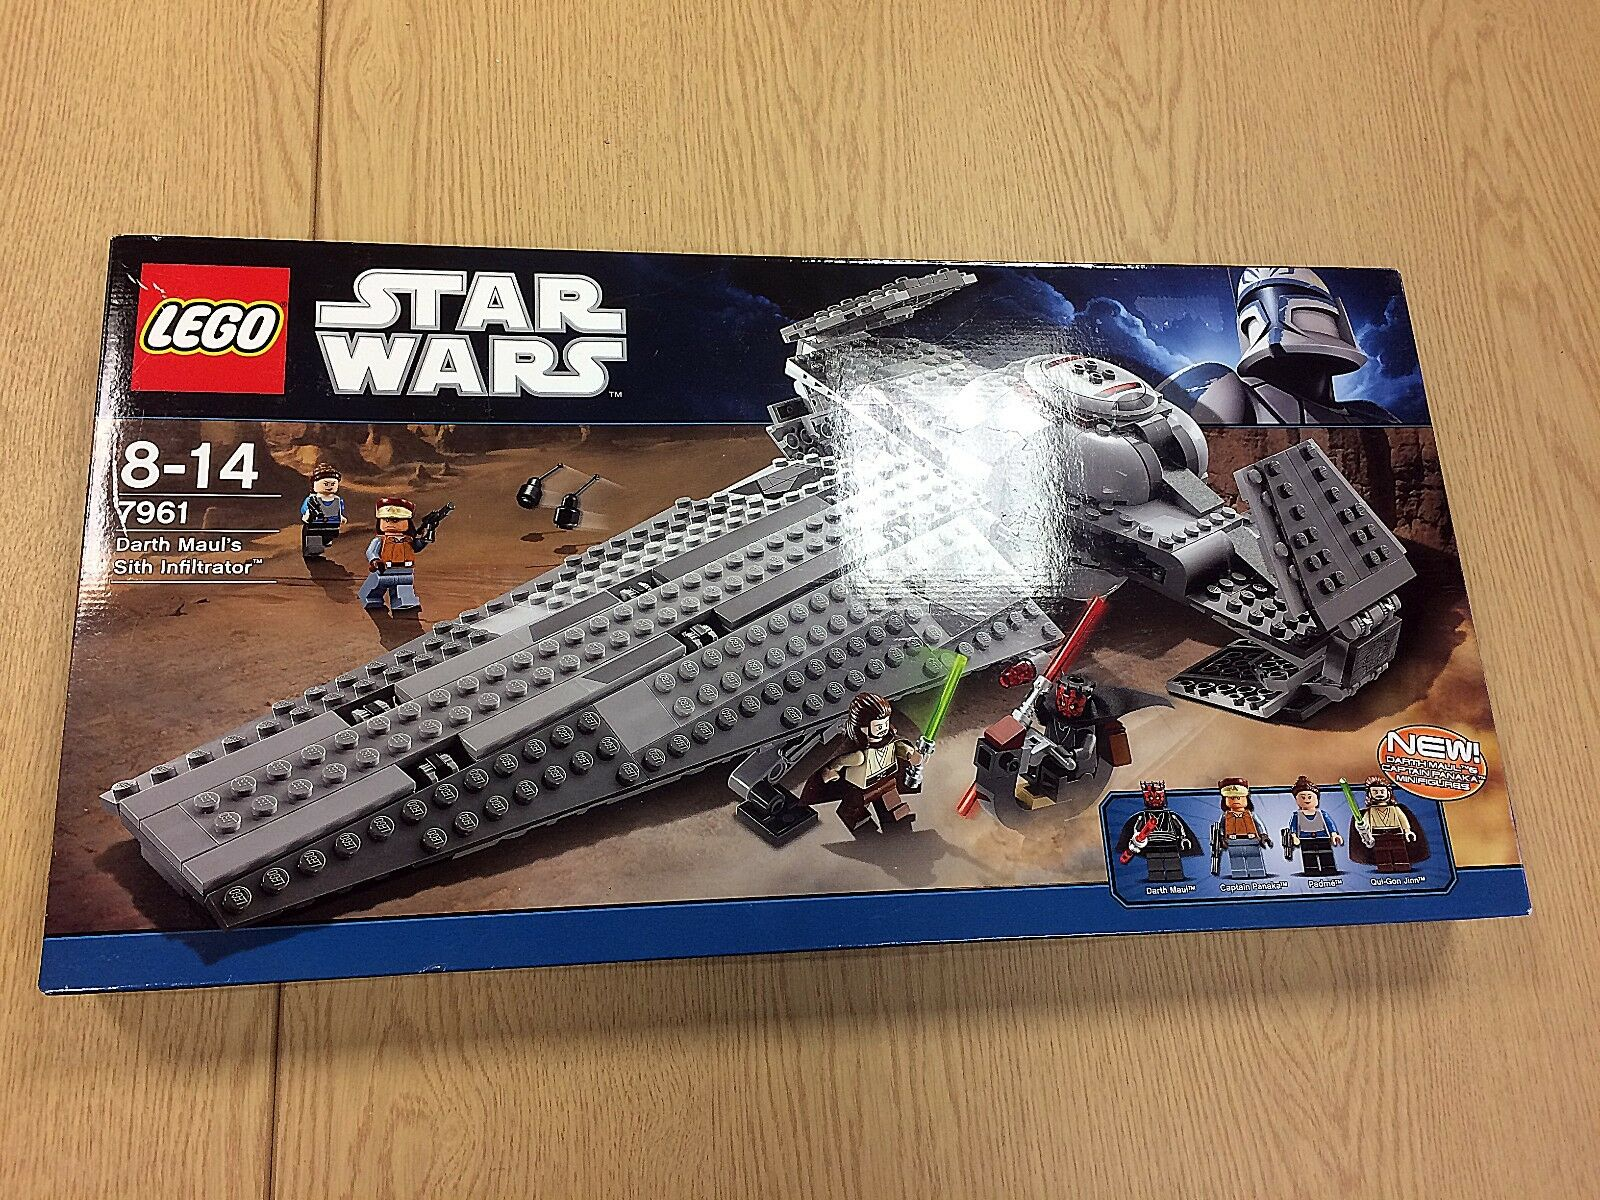 LEGO Star Wars Darth Maul's Sith Infiltrator 7961 (2011) | New, Unopened